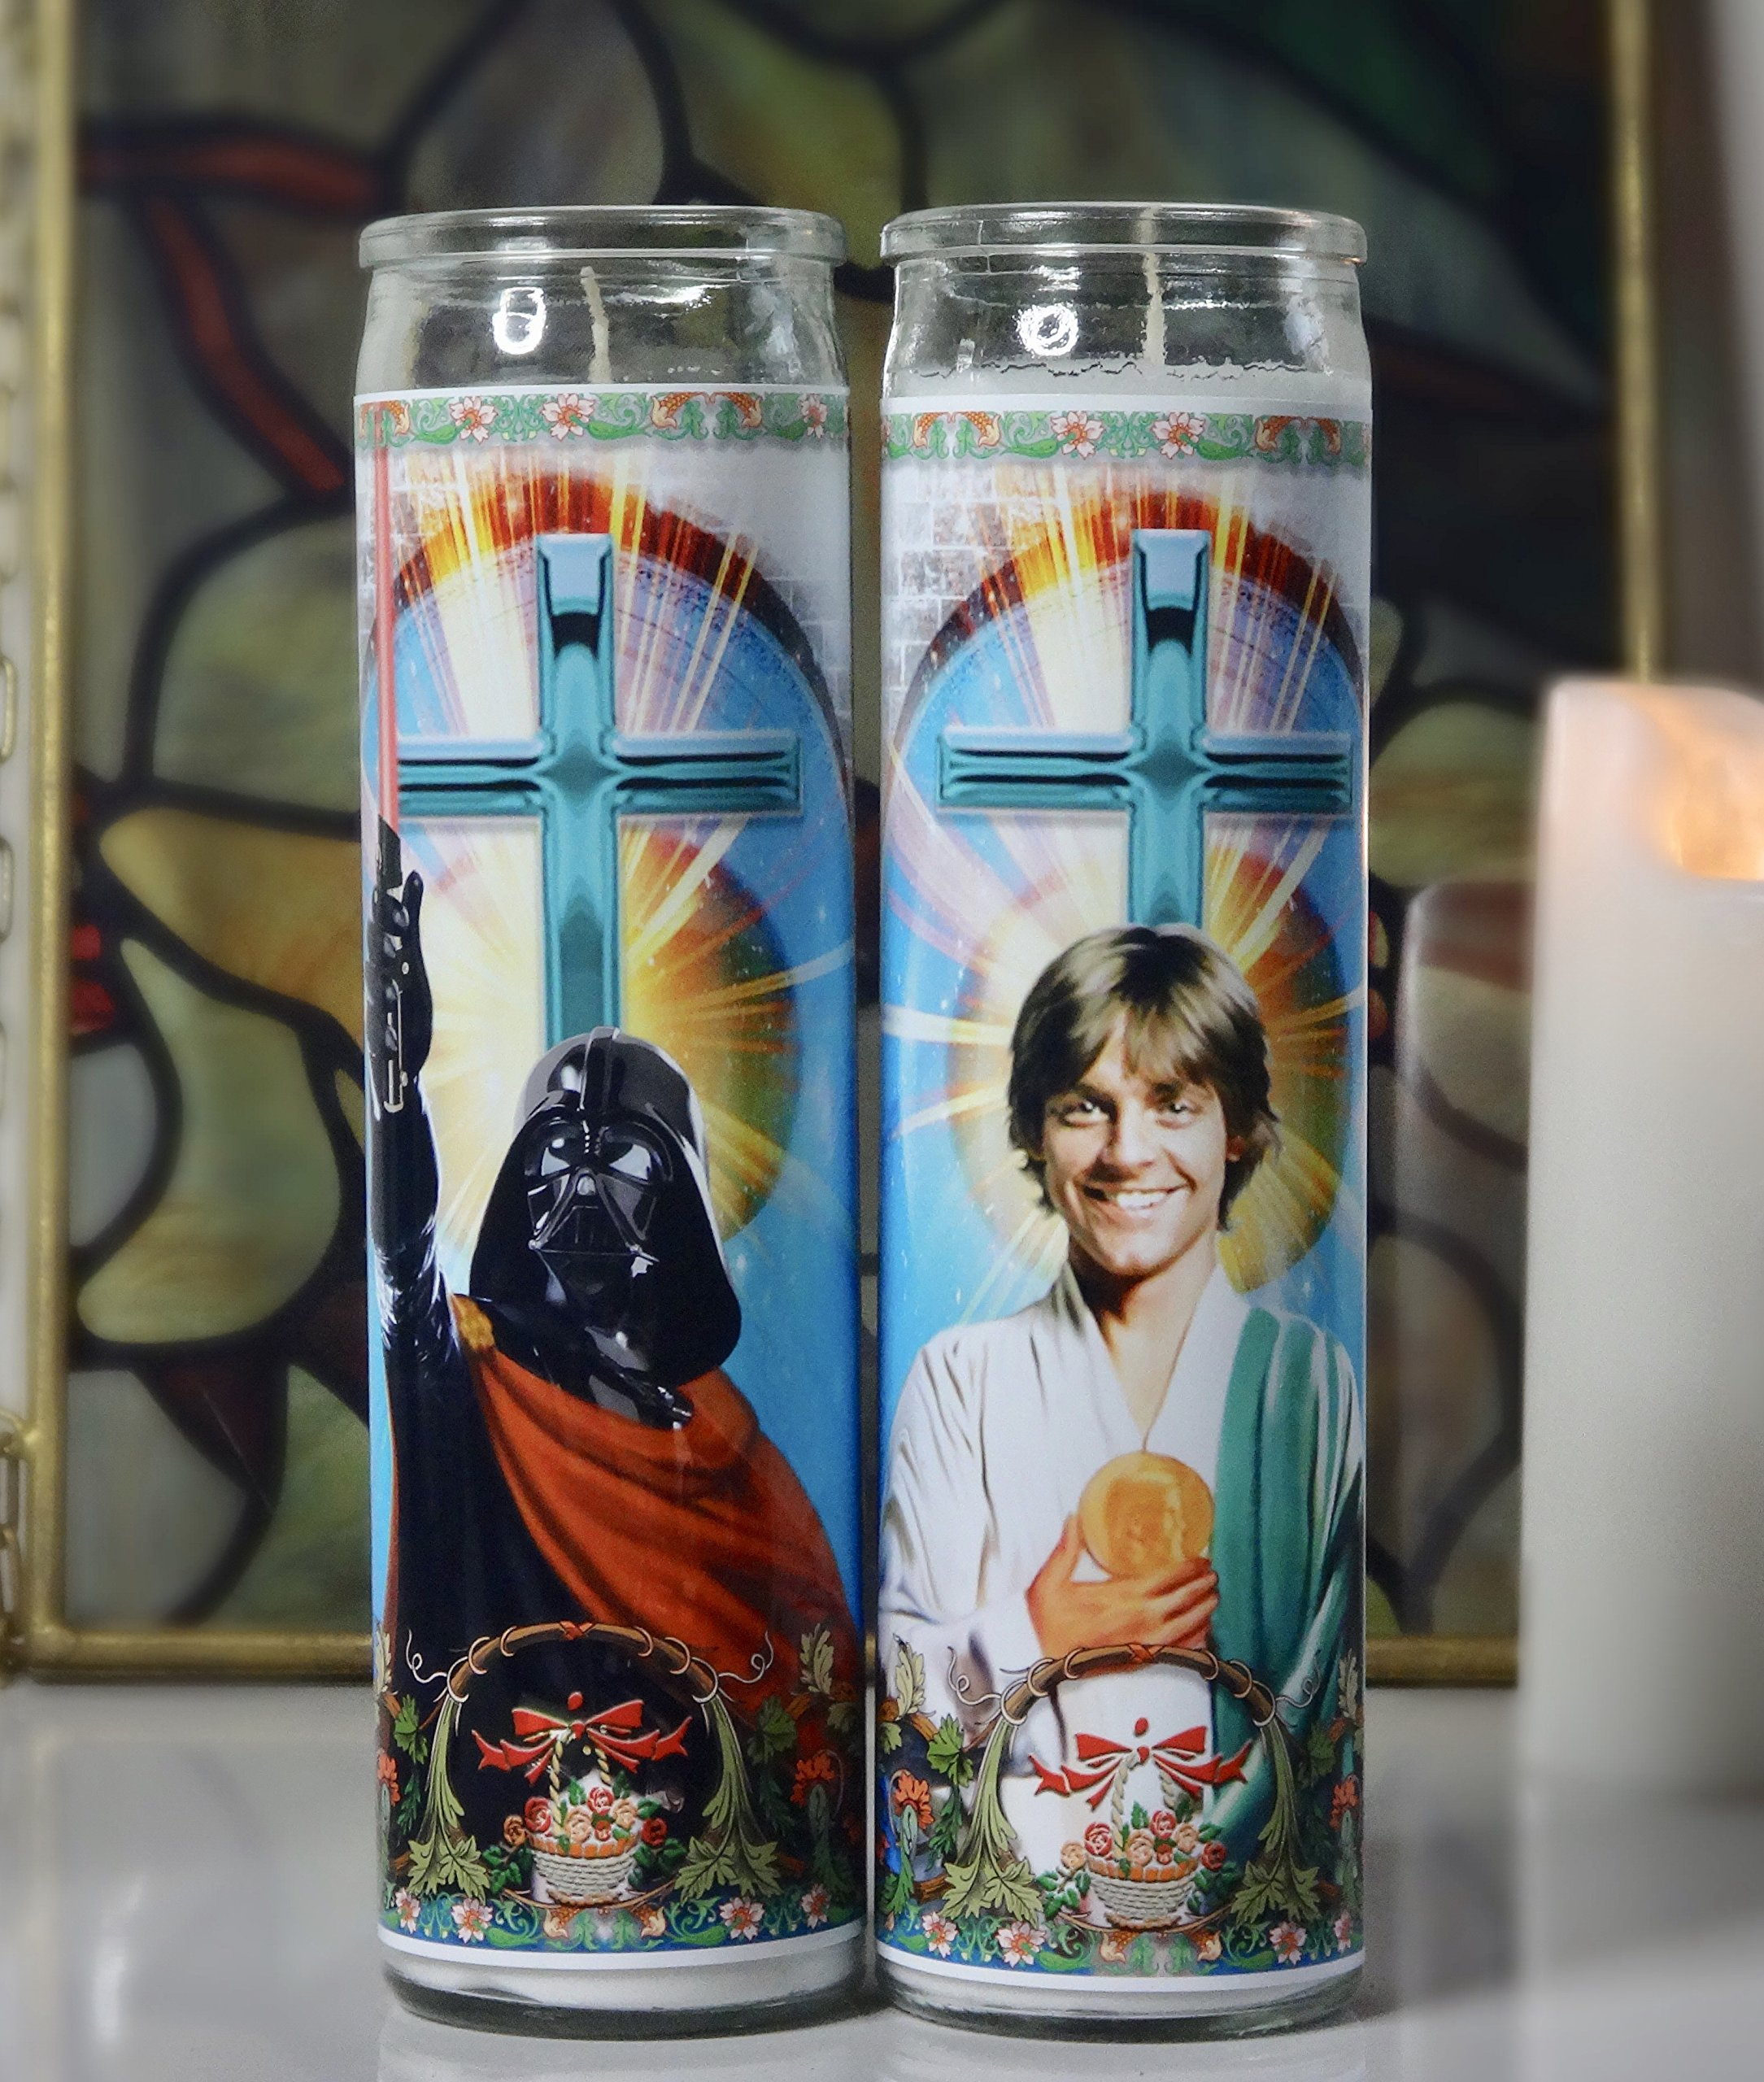 My Pen15 Club Luke Skywalker and Darth Vader Celebrity Prayer Candle Set - Star Wars